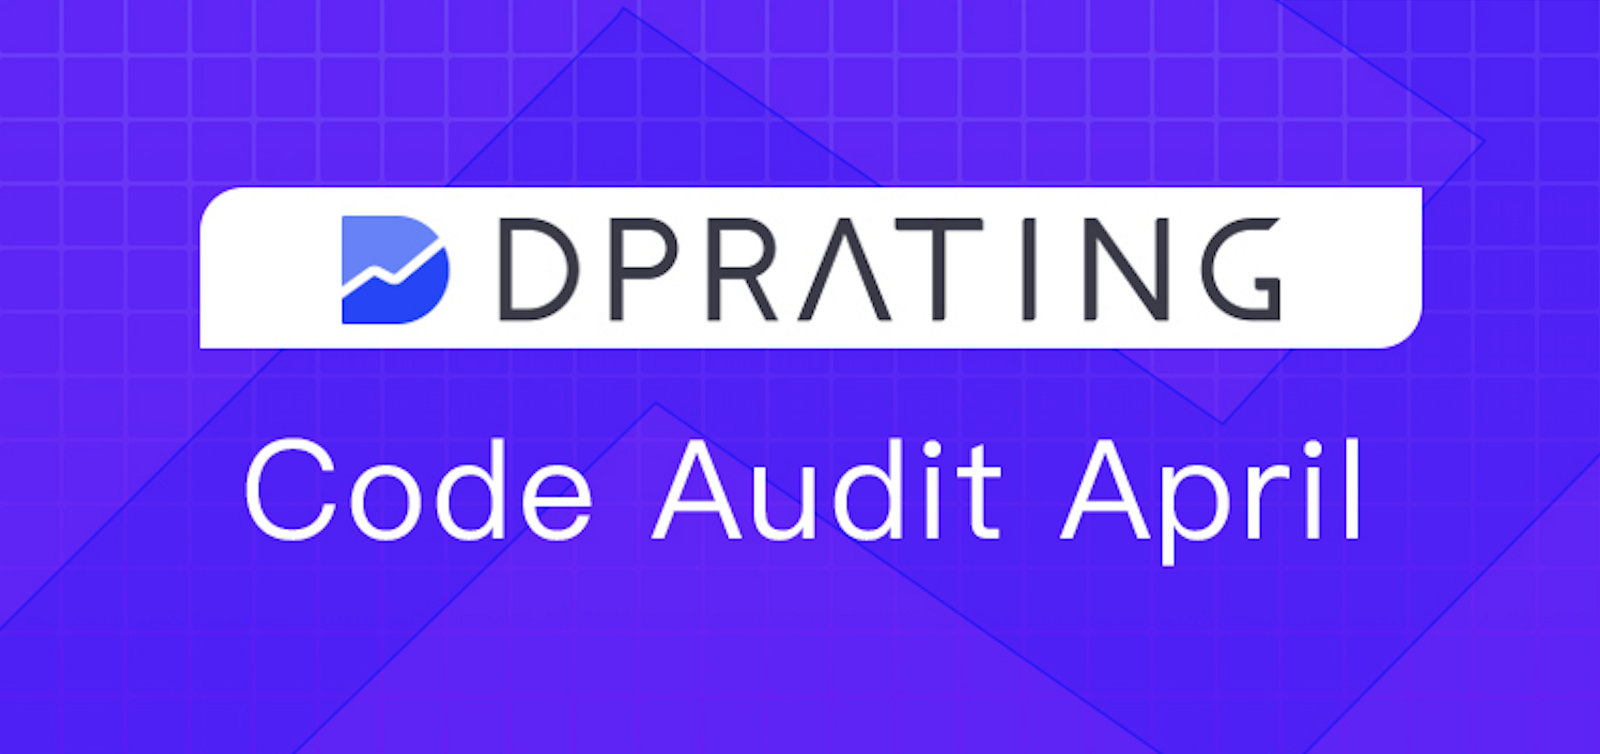 dprating github audit for 200 blockchain projects april 2018